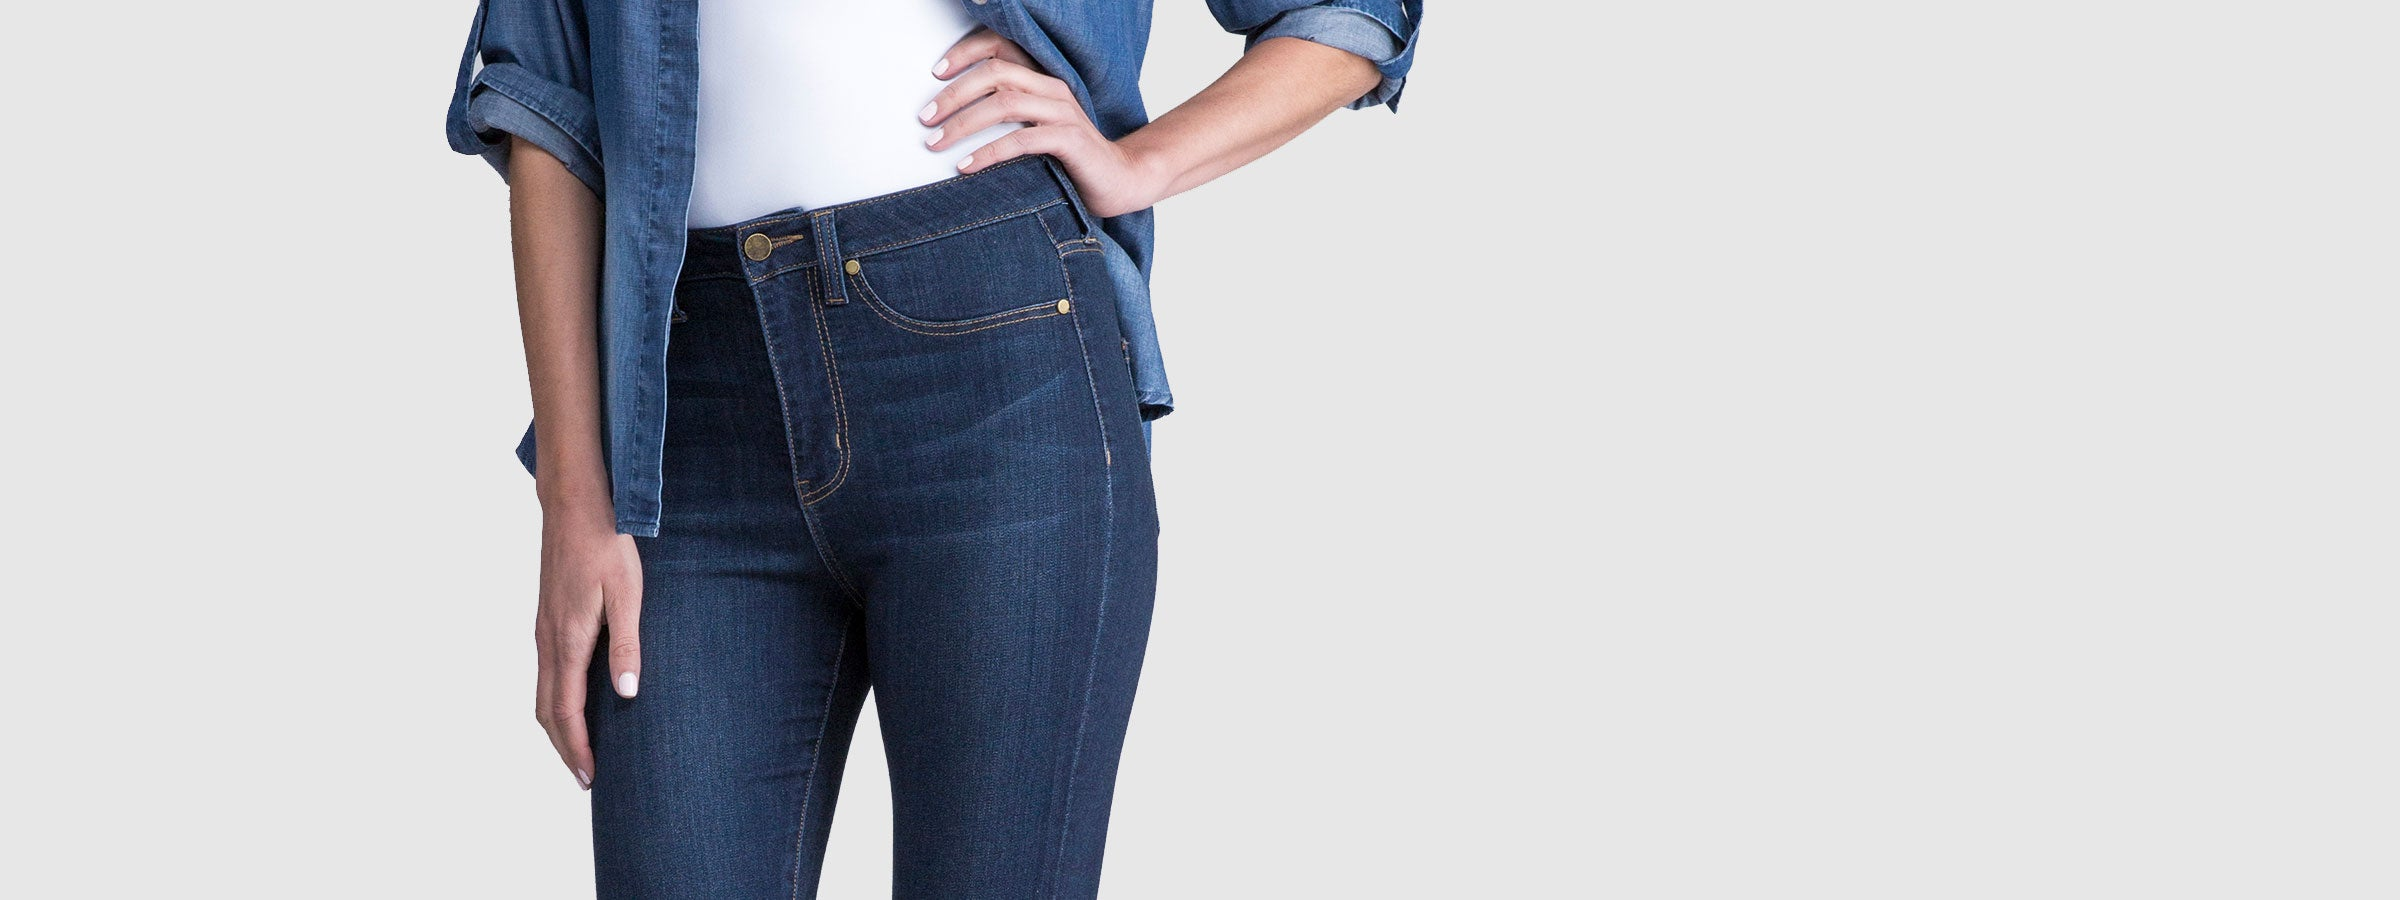 Liverpool Highwaist Styles, High-rise denim